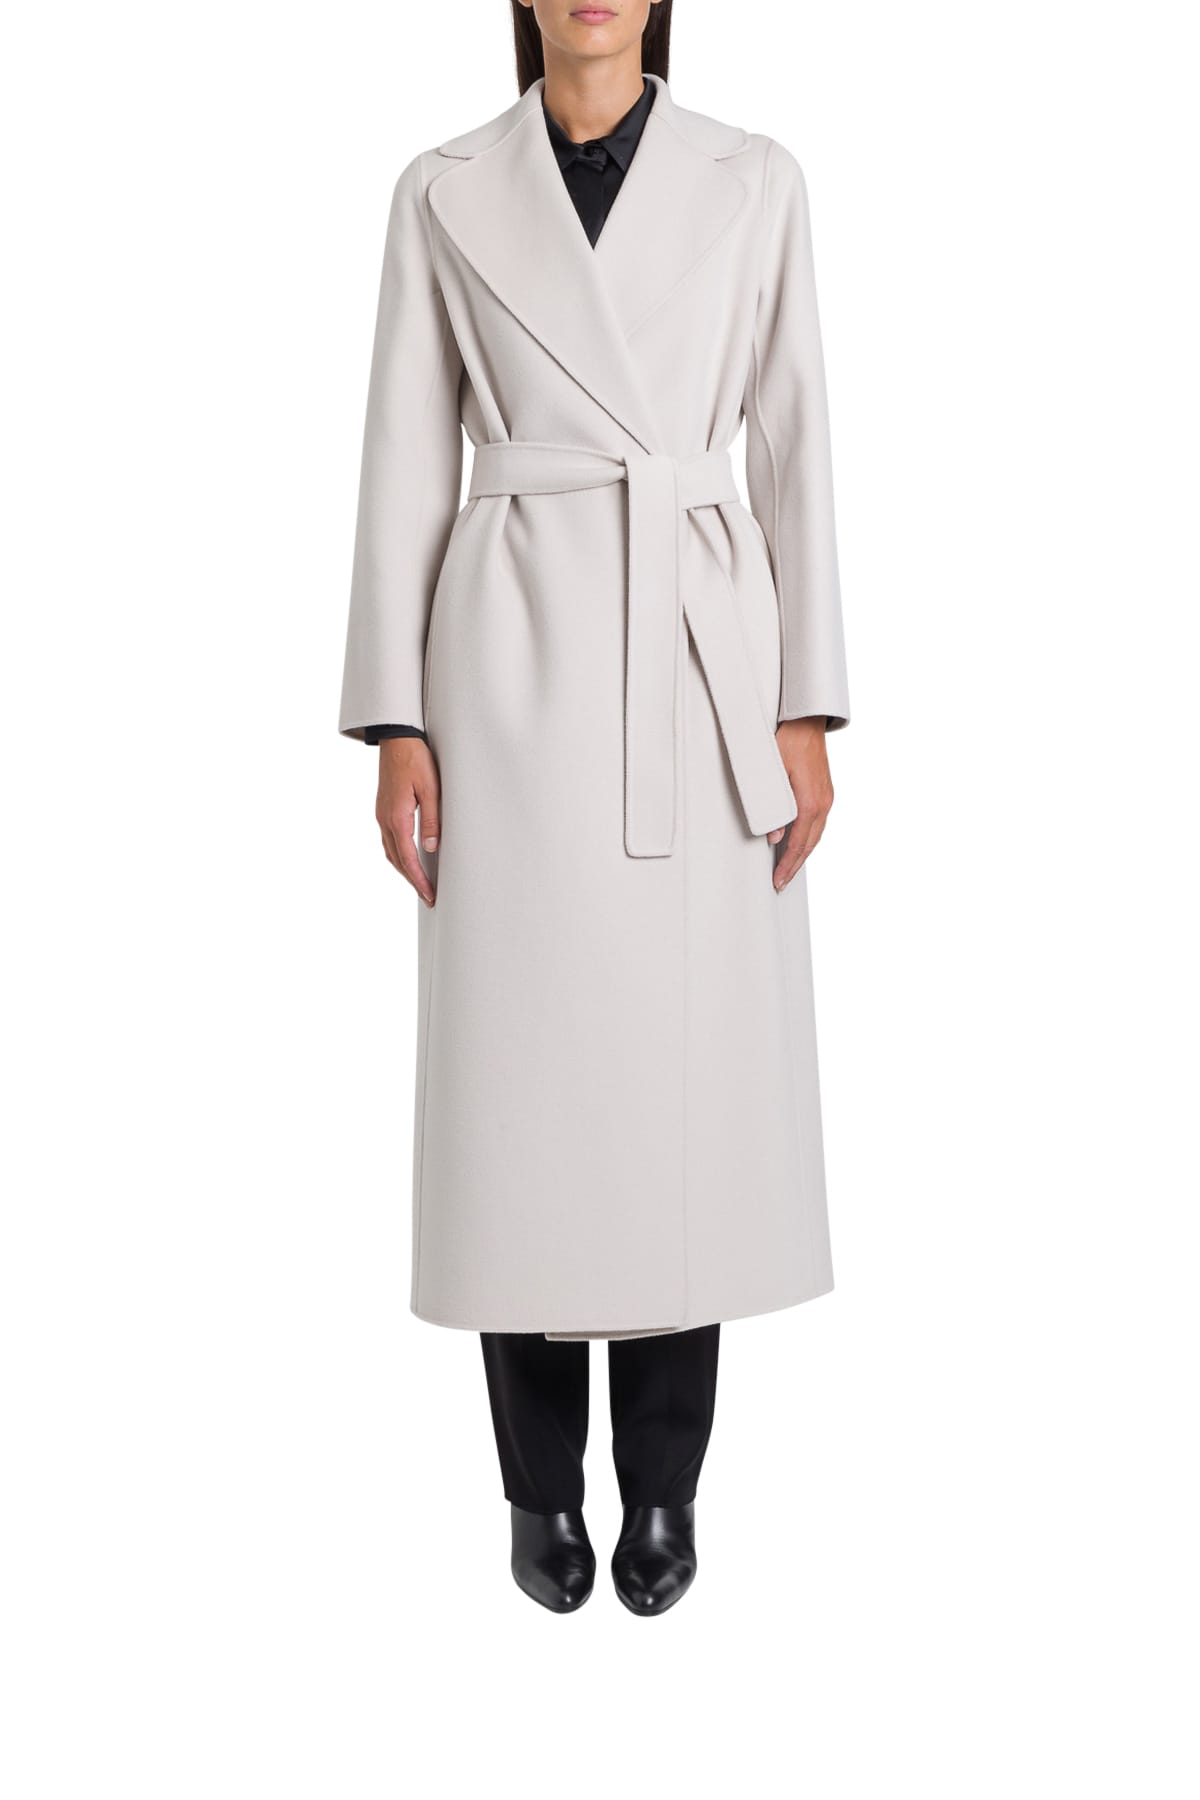 Photo of  S Max Mara Here is The Cube Poldo Coat- shop S Max Mara Here is The Cube jackets online sales